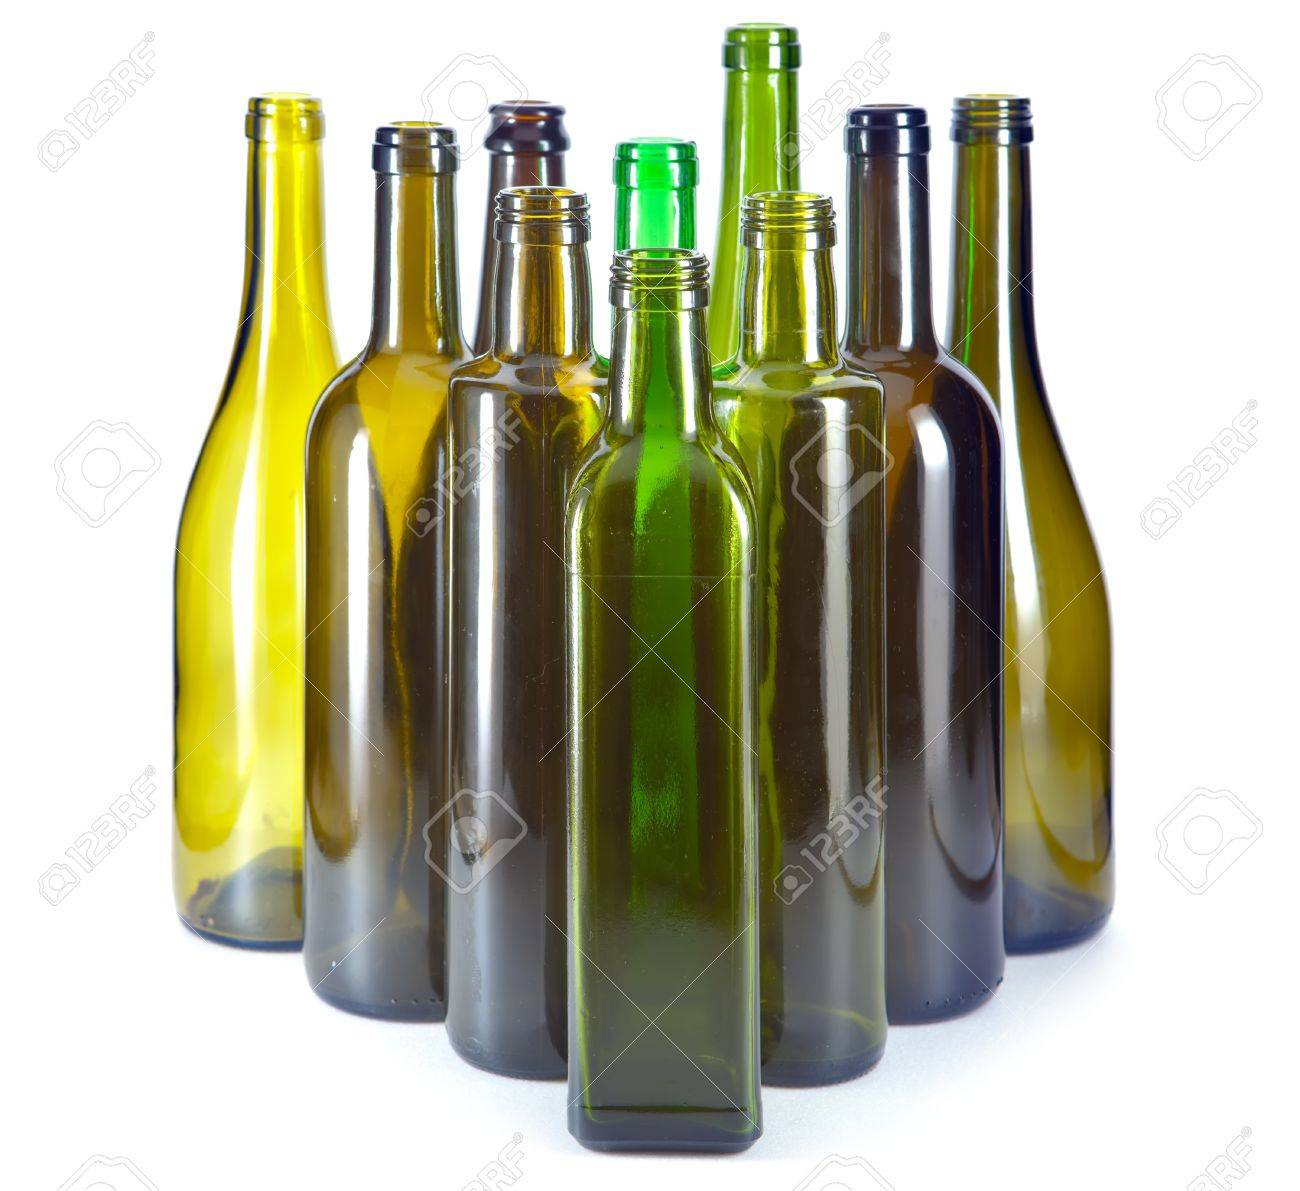 Bright colorful bottles Stock Photo - 19506032